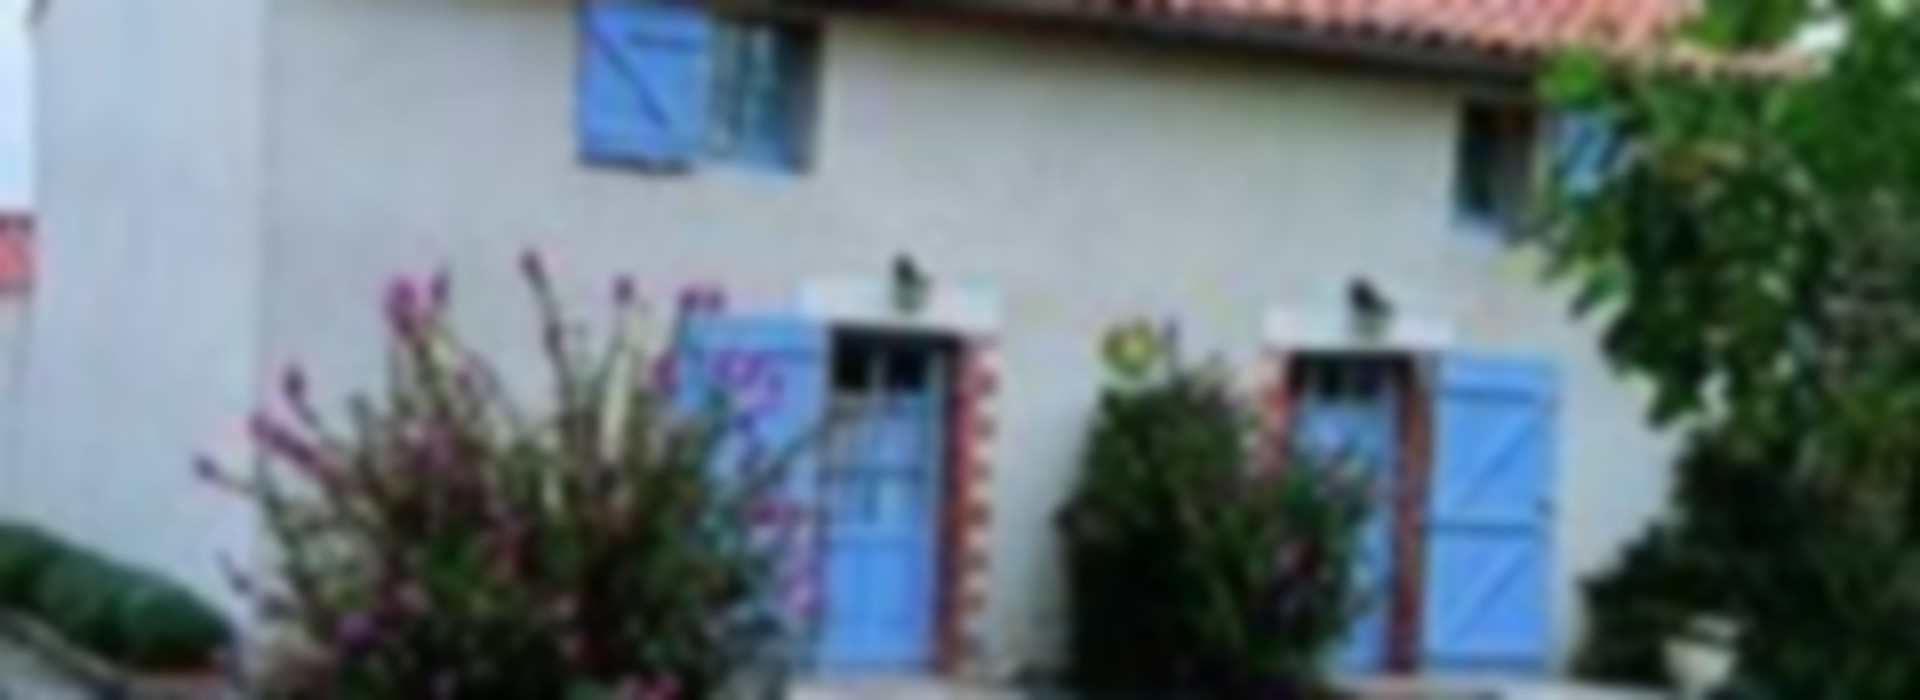 LOCATION DE VACANCES GITES DE FRANCE 85G156206